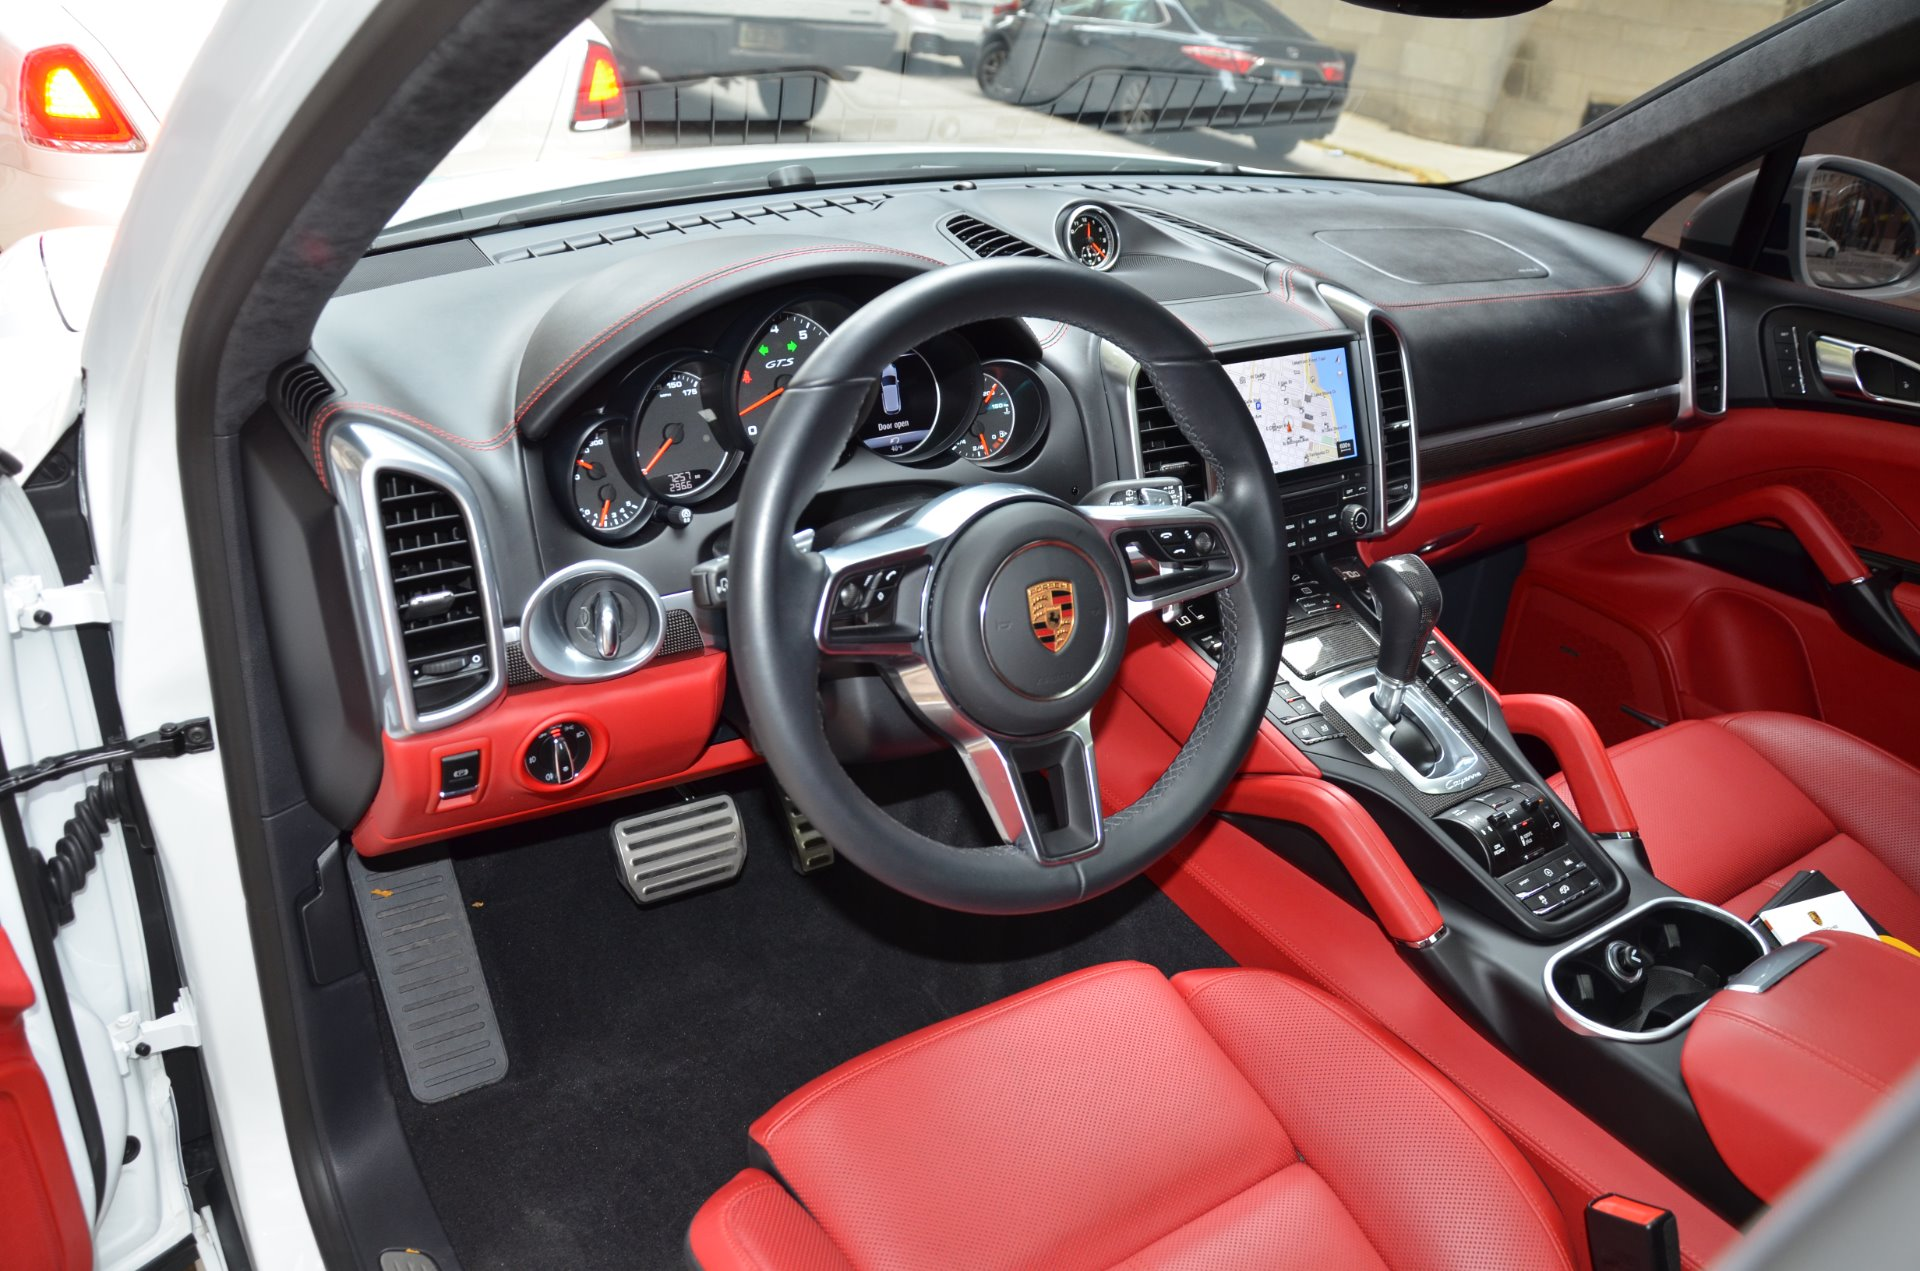 2017 porsche cayenne gts stock l304c for sale near chicago il il porsche dealer Porsche cayenne interior parts